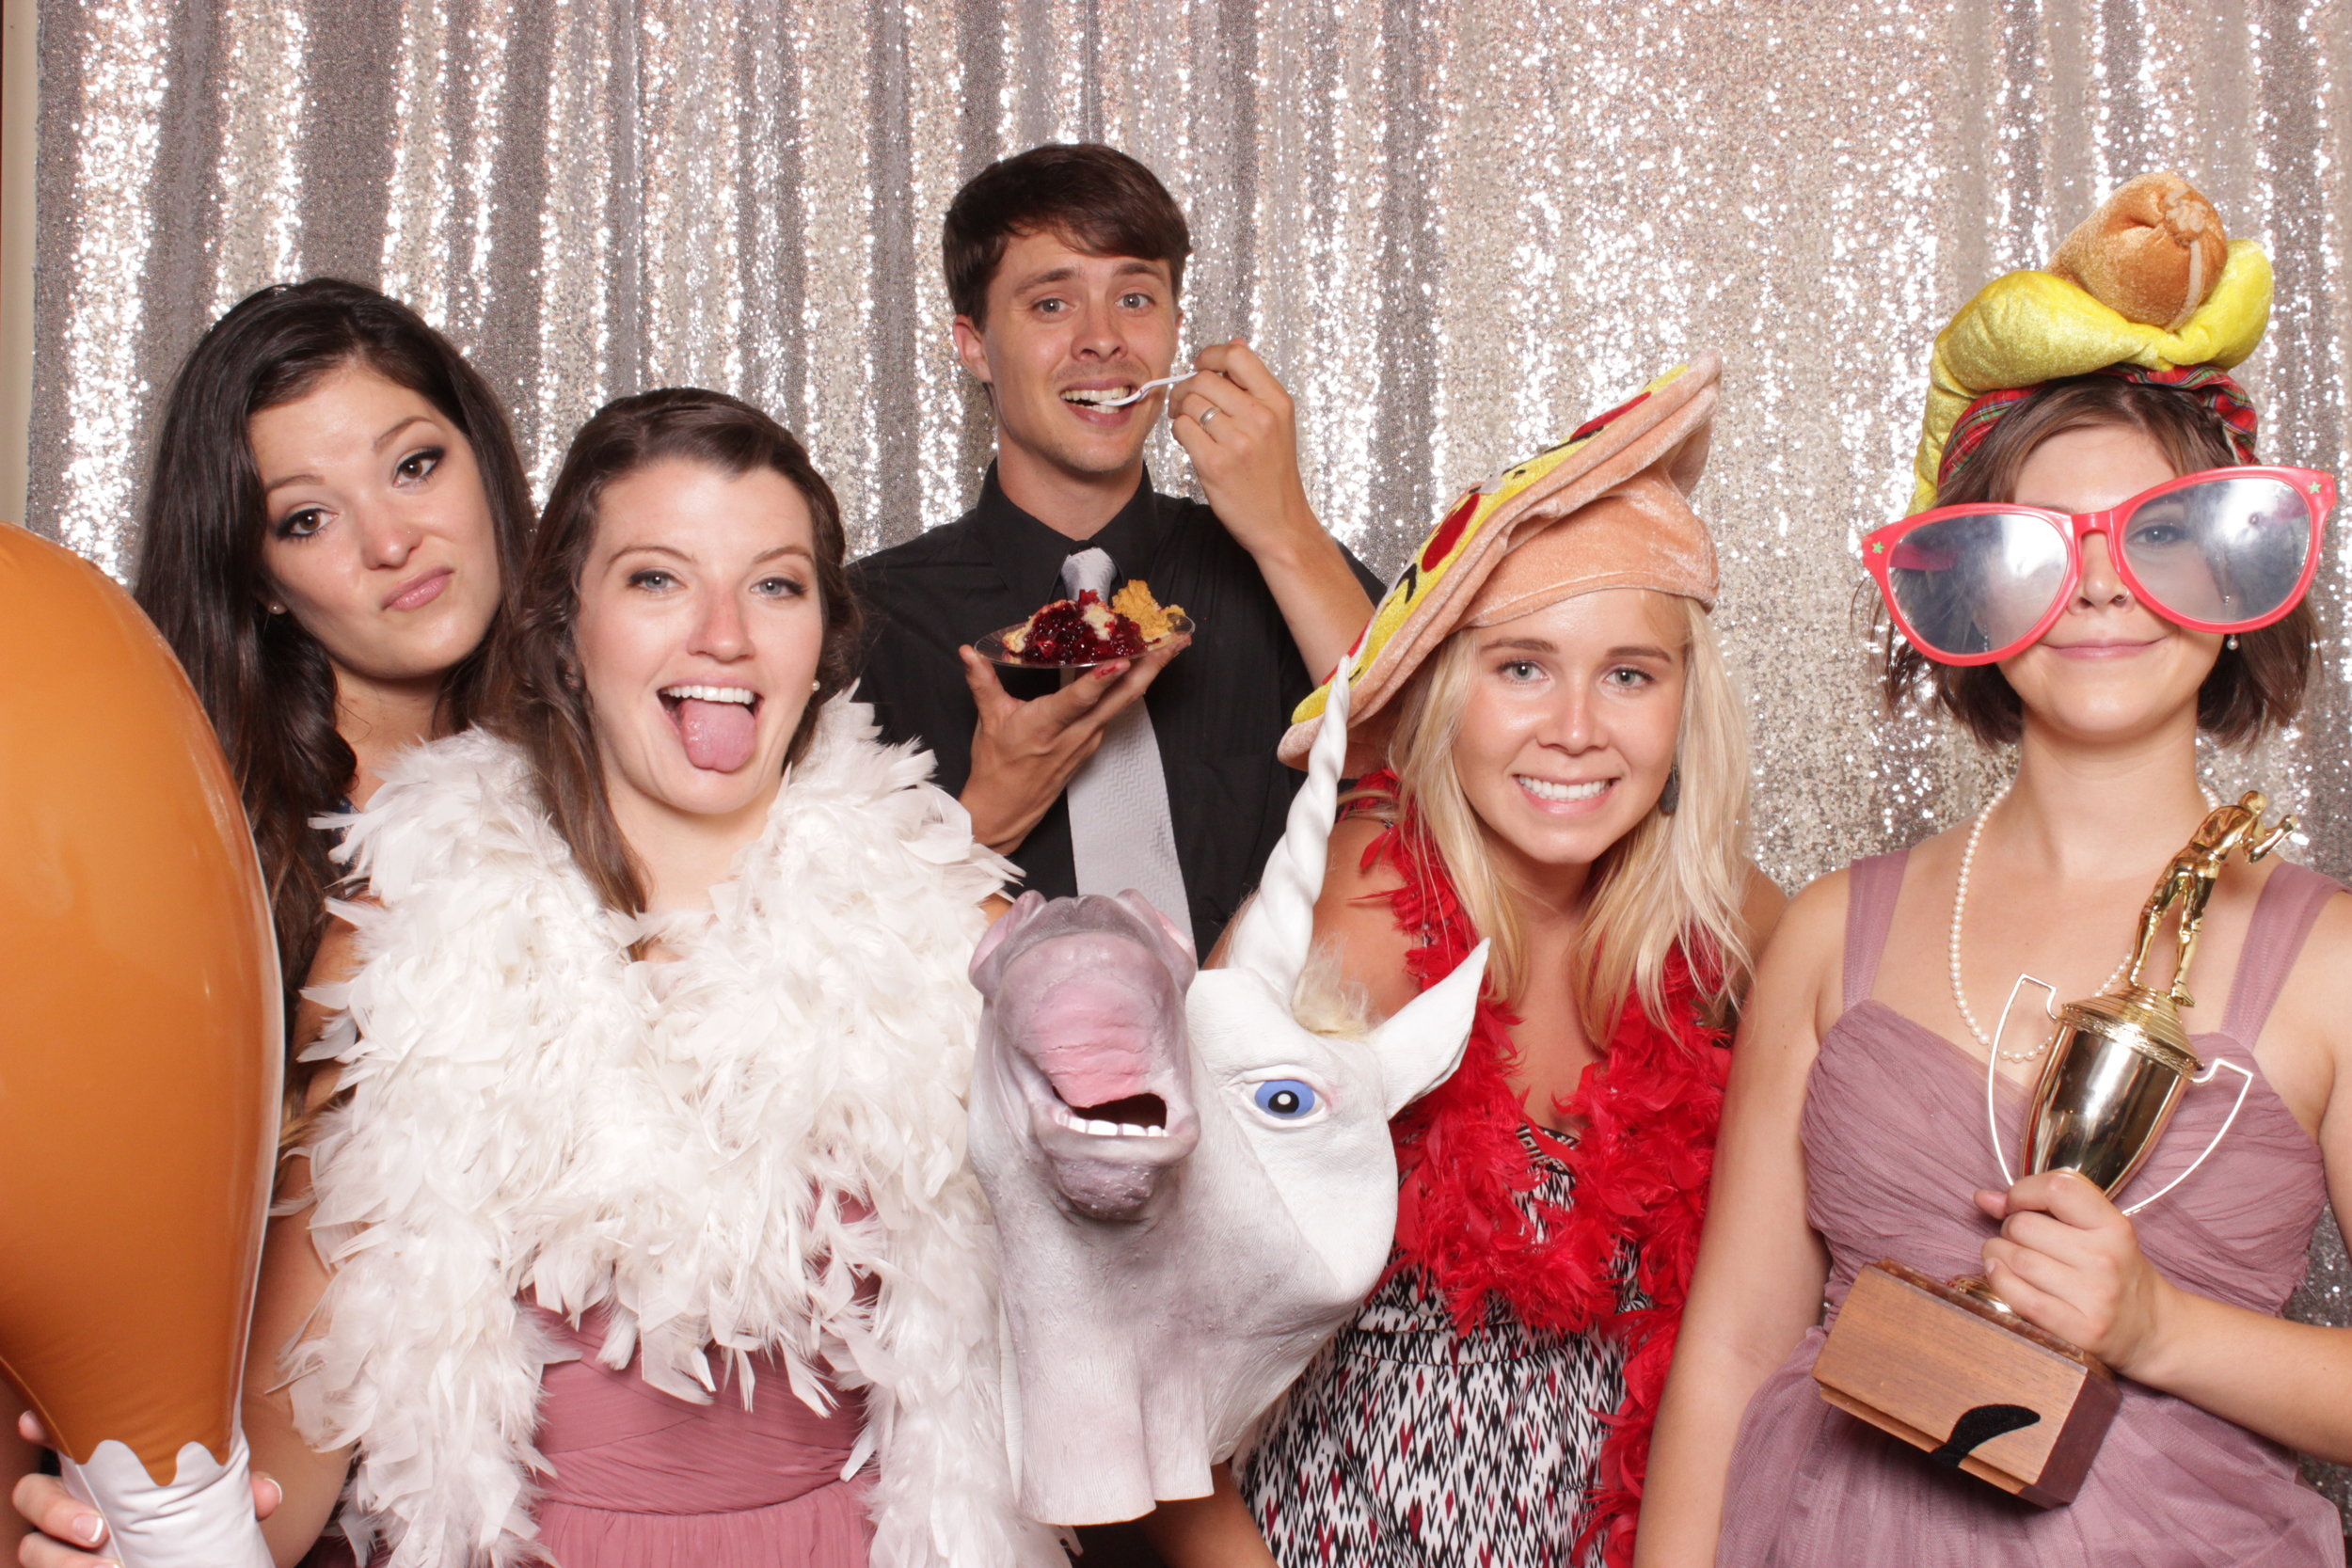 photo-booths-for-weddings